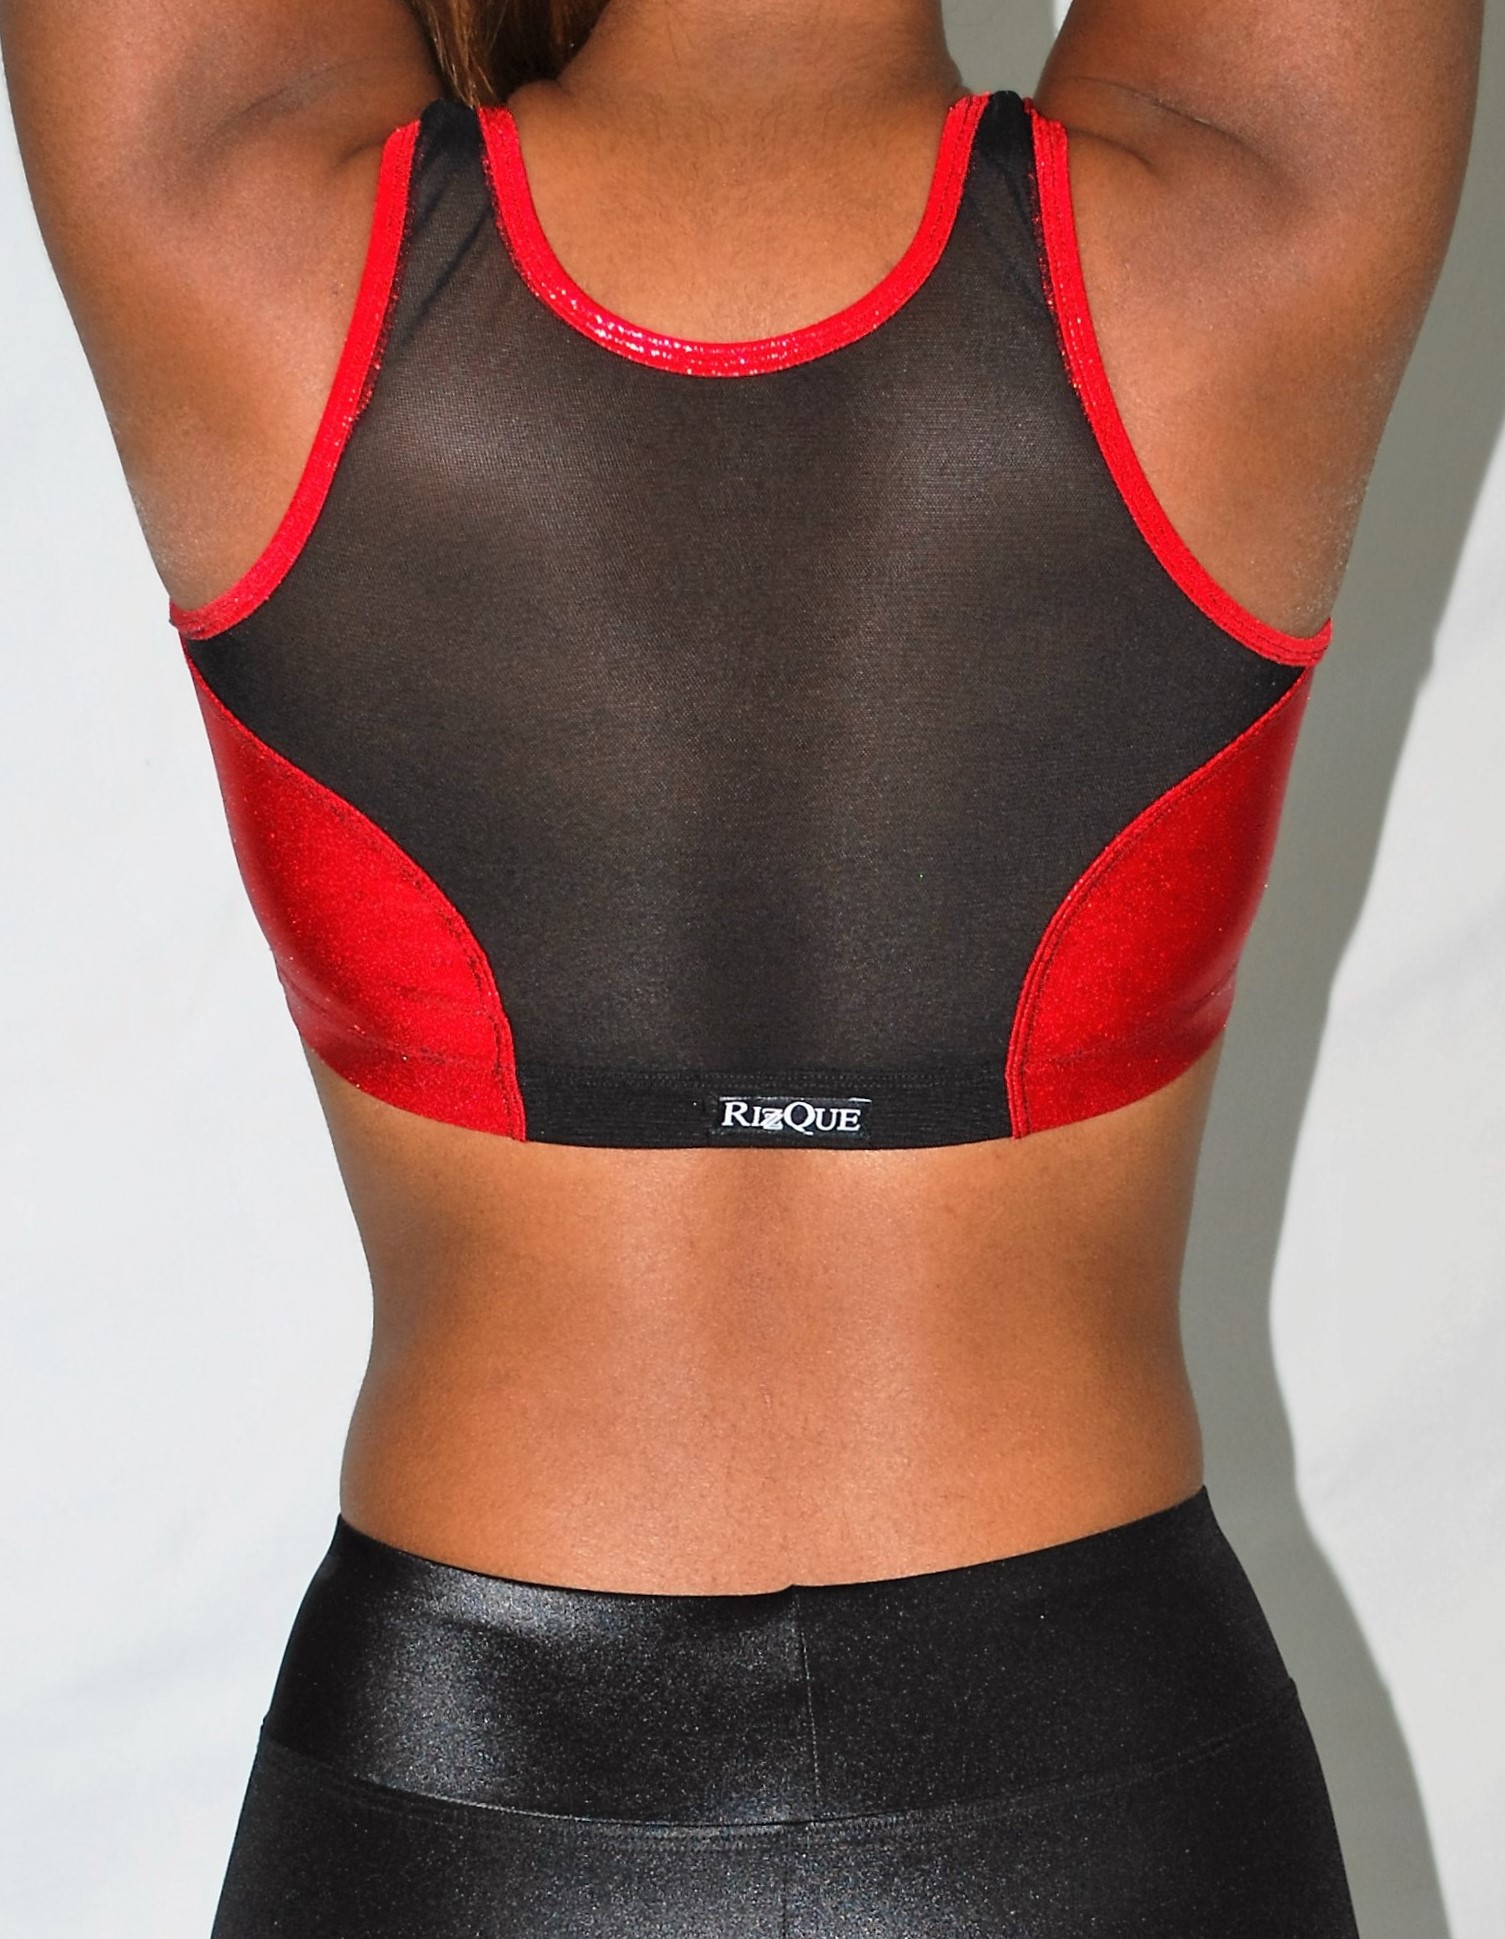 My MOTION Sports bra